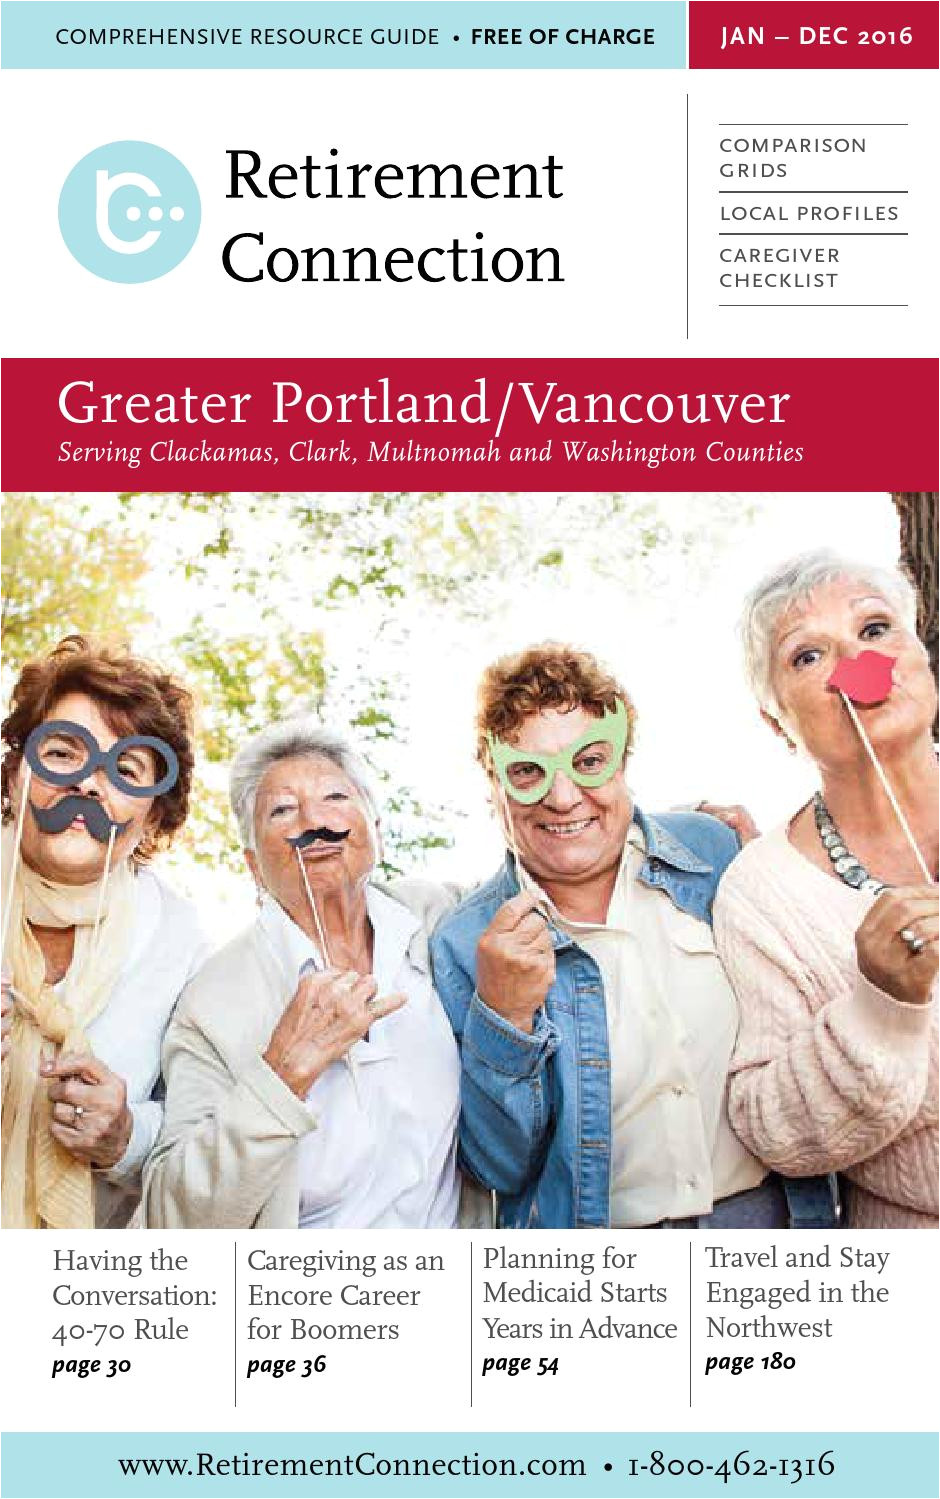 january 2016 retirement connection guide portland web by retirement connection issuu